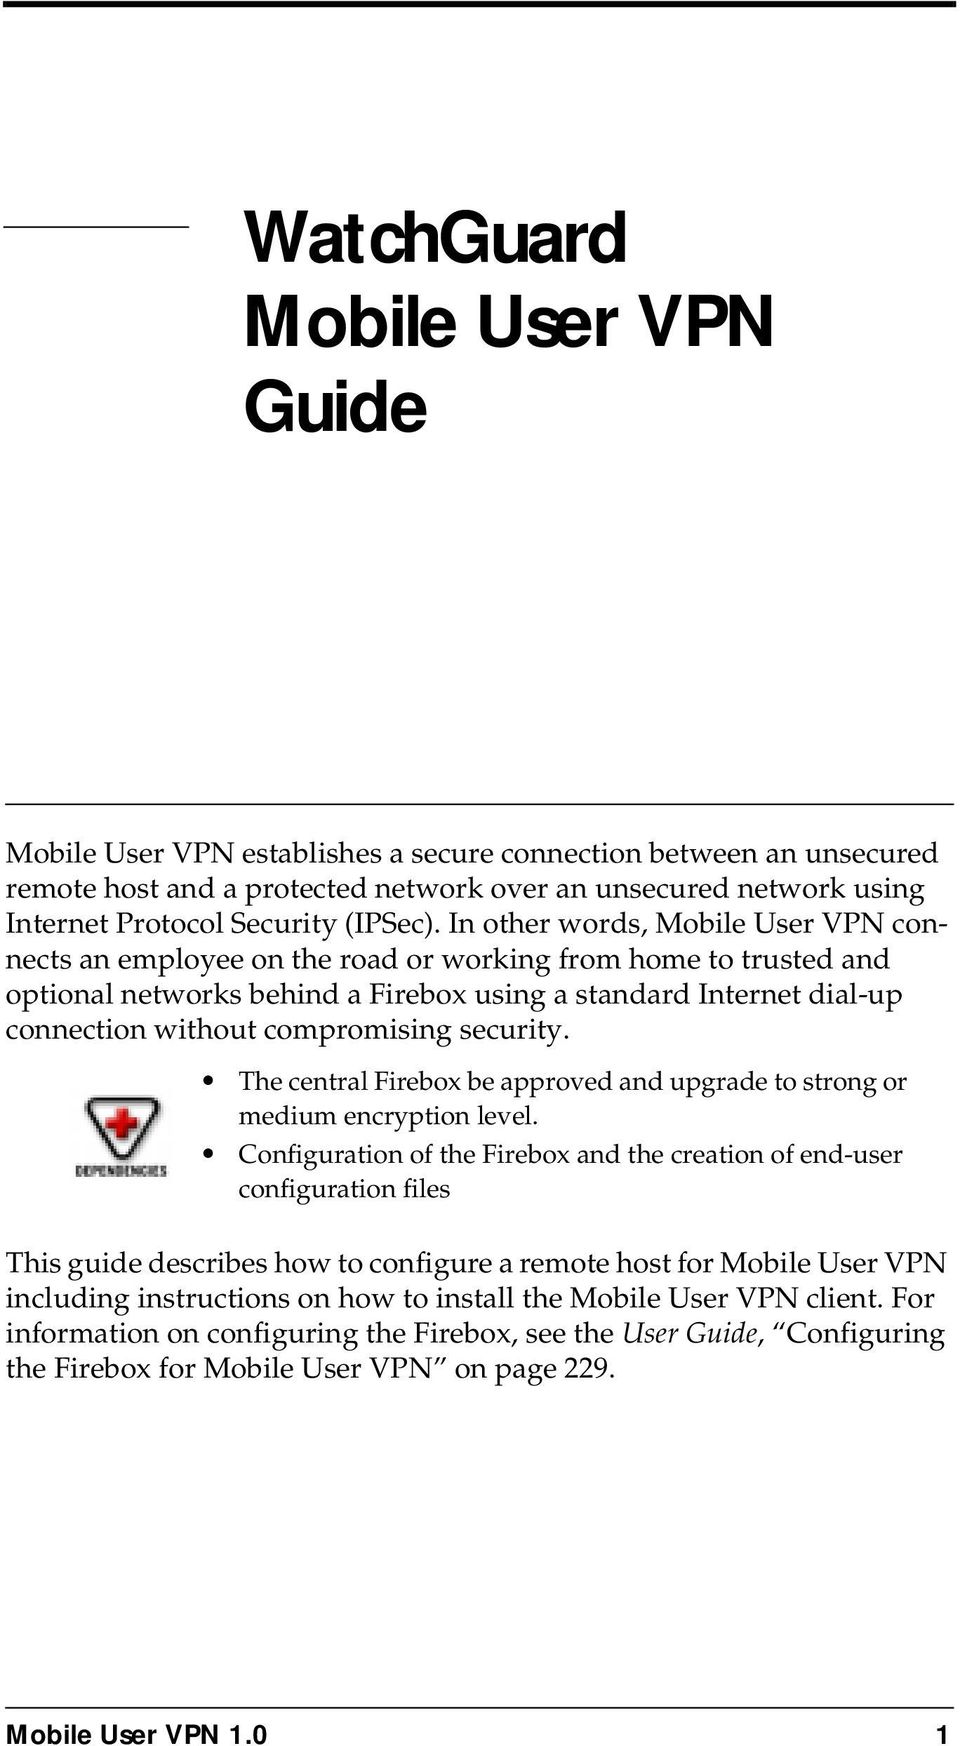 In other words, Mobile User VPN connects an employee on the road or working from home to trusted and optional networks behind a Firebox using a standard Internet dial-up connection without